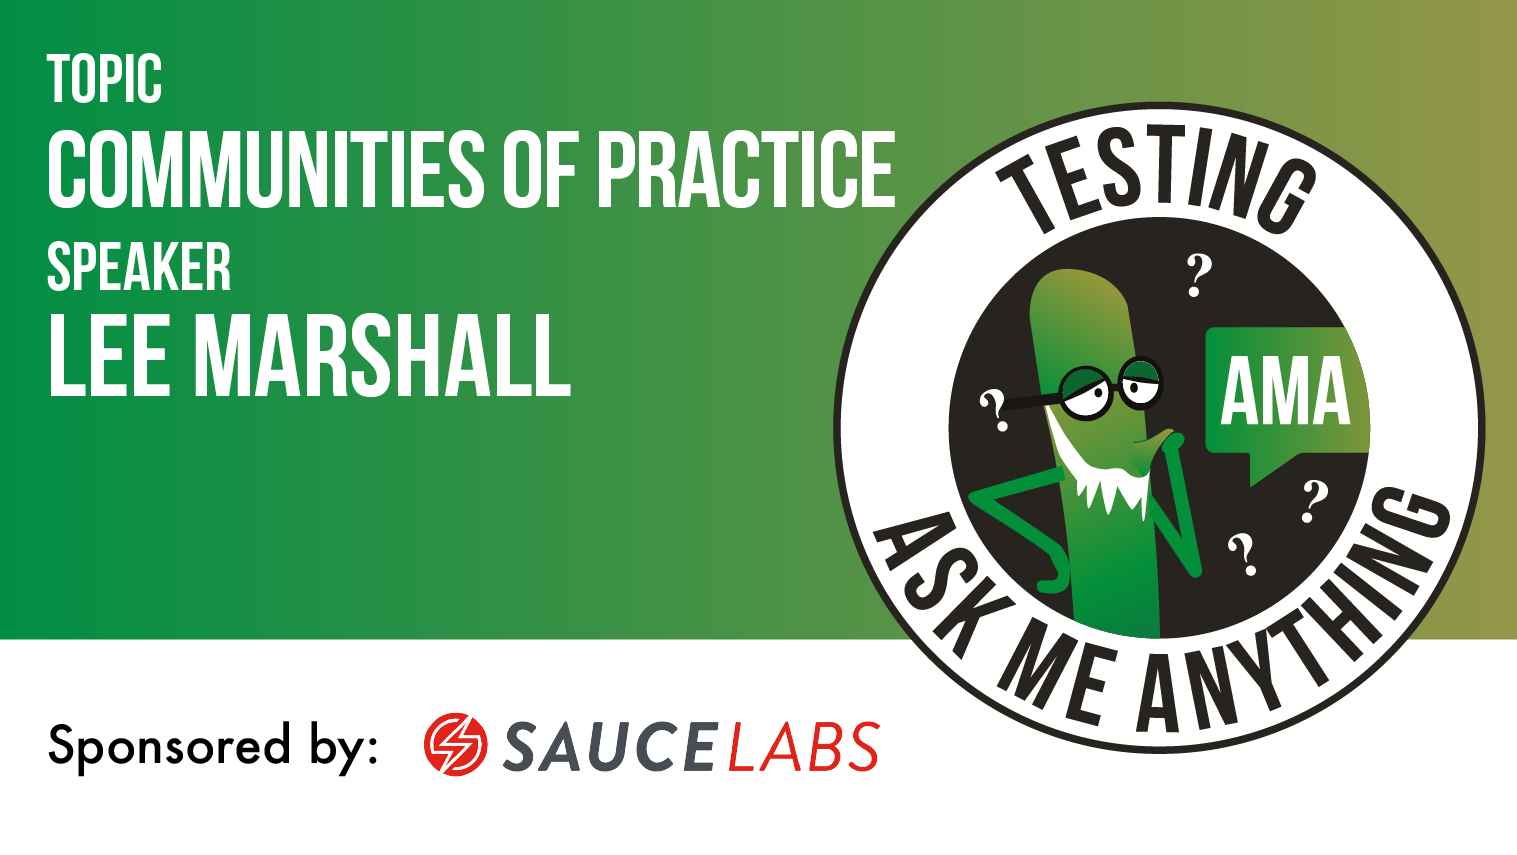 Testing Ask Me Anything - Communities of Practice - Lee Marshall